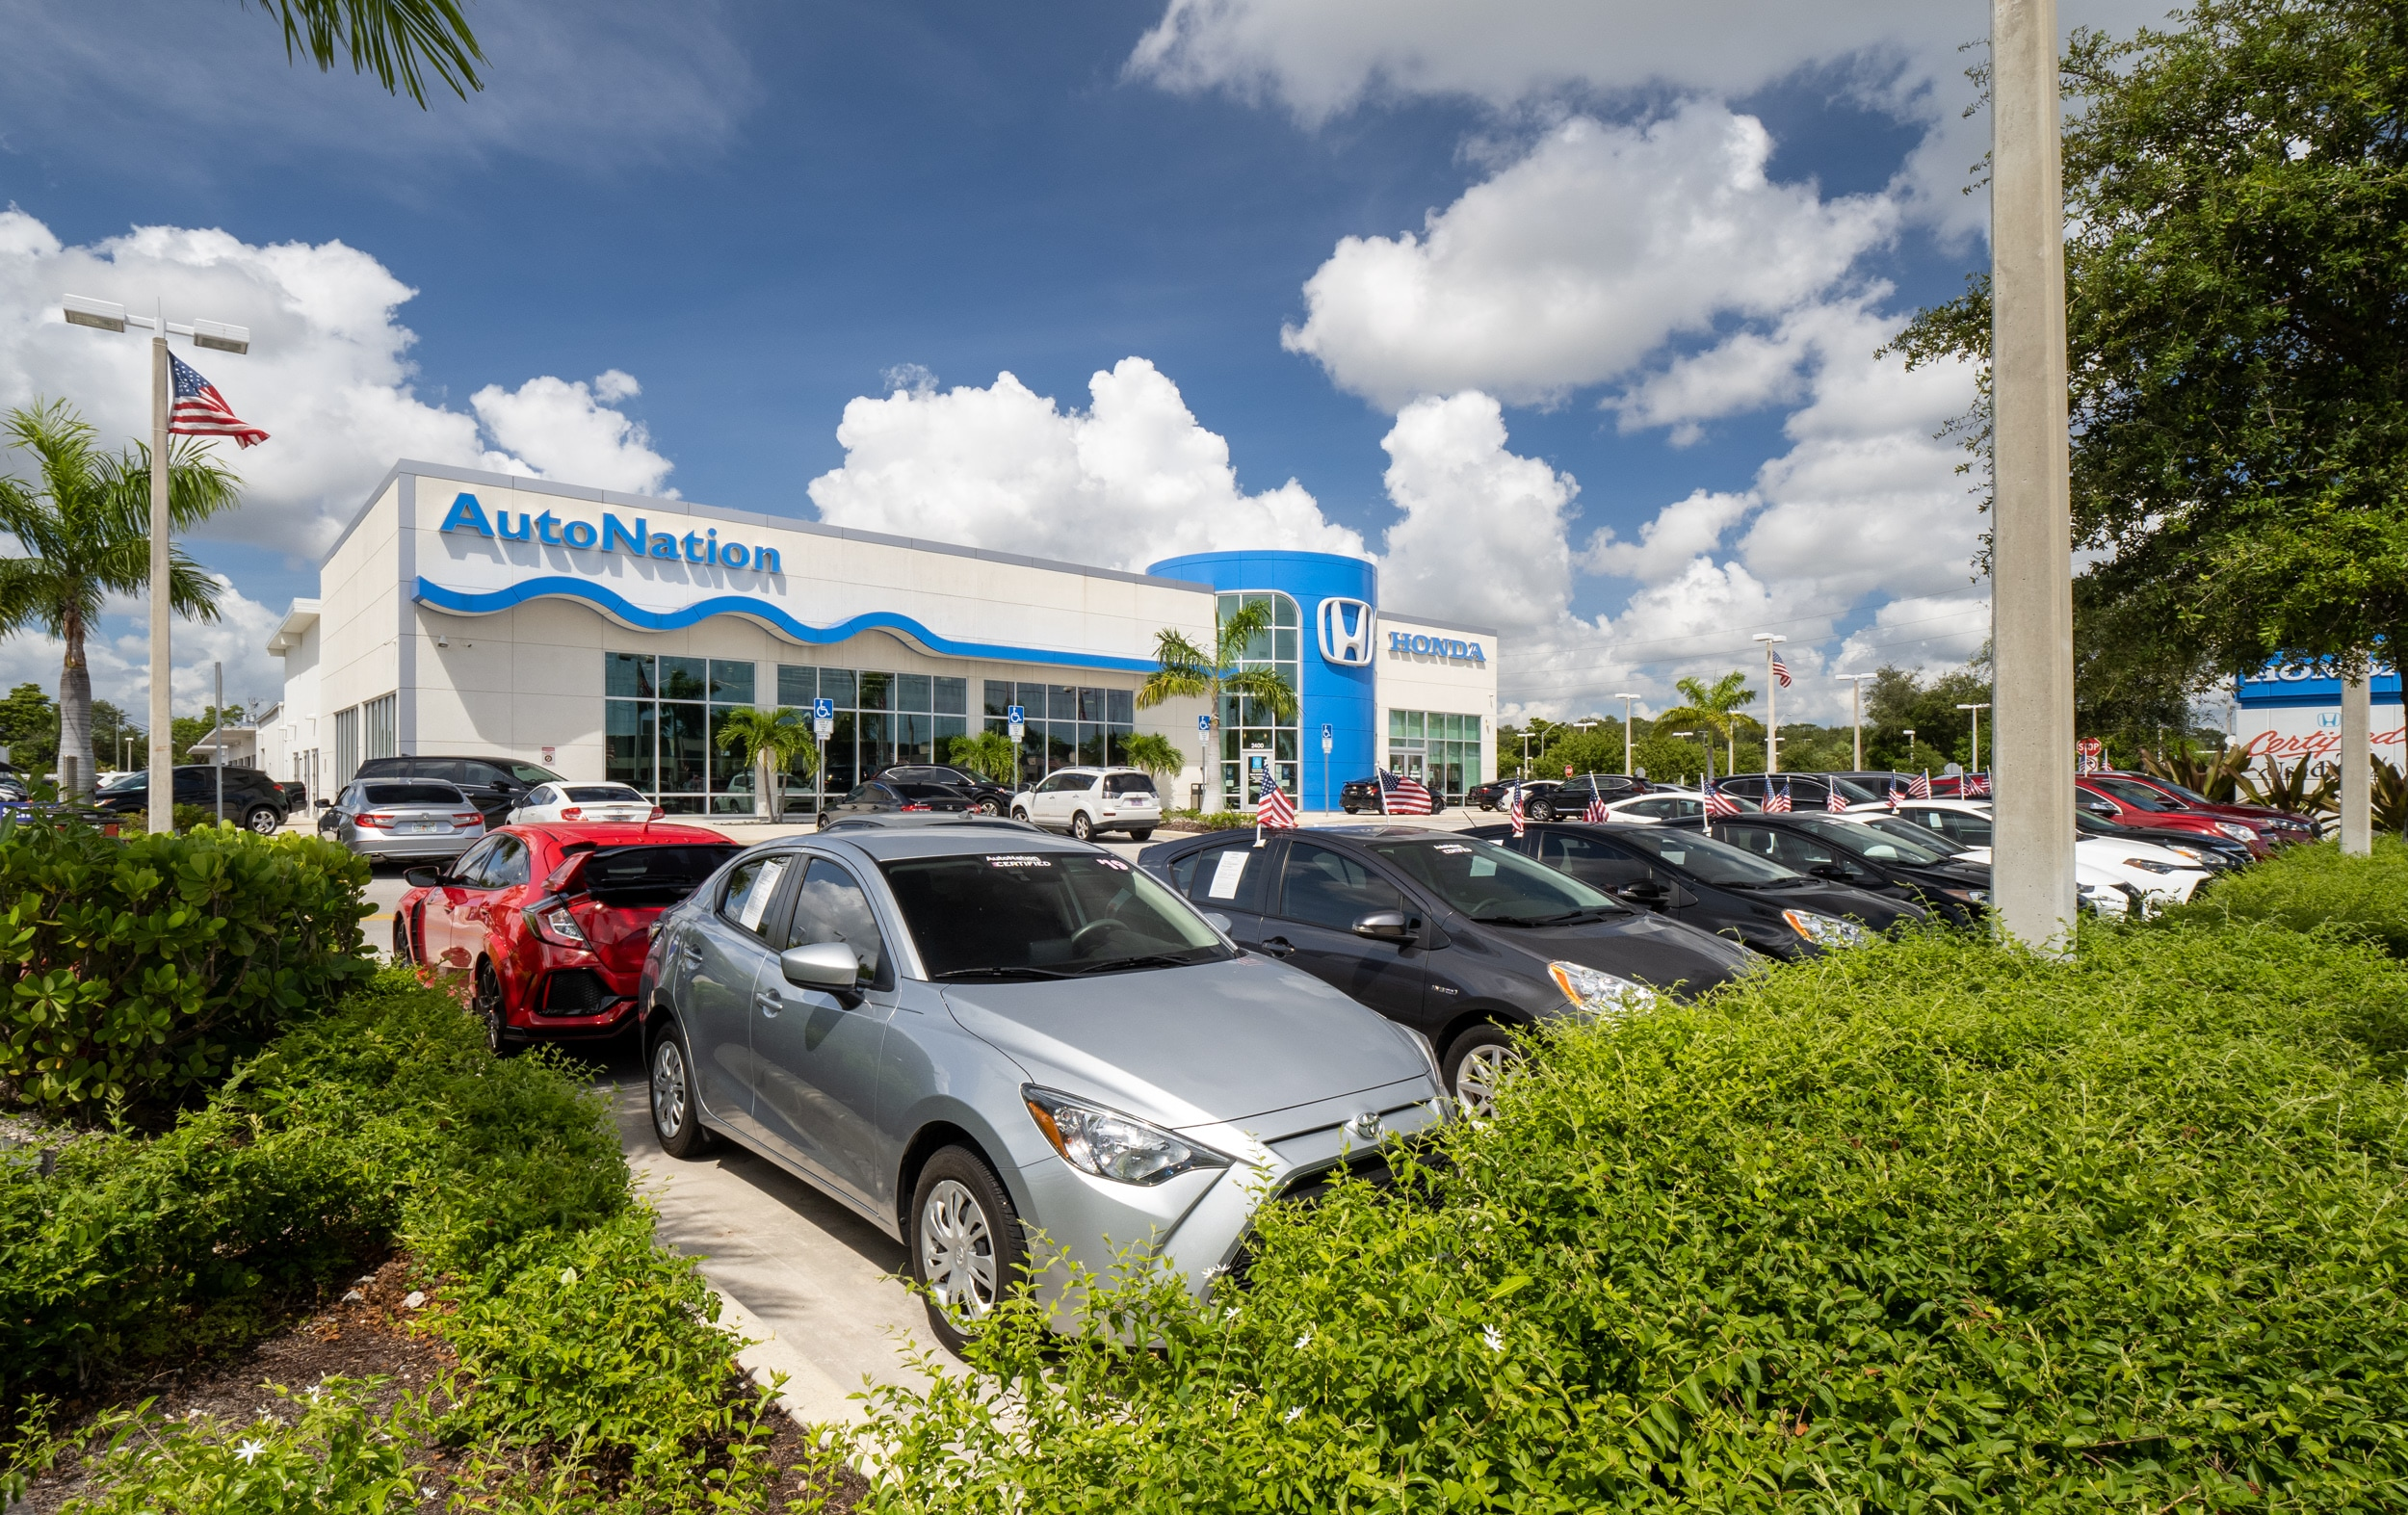 AutoNation Honda Hollywood: A Honda Dealership Near You